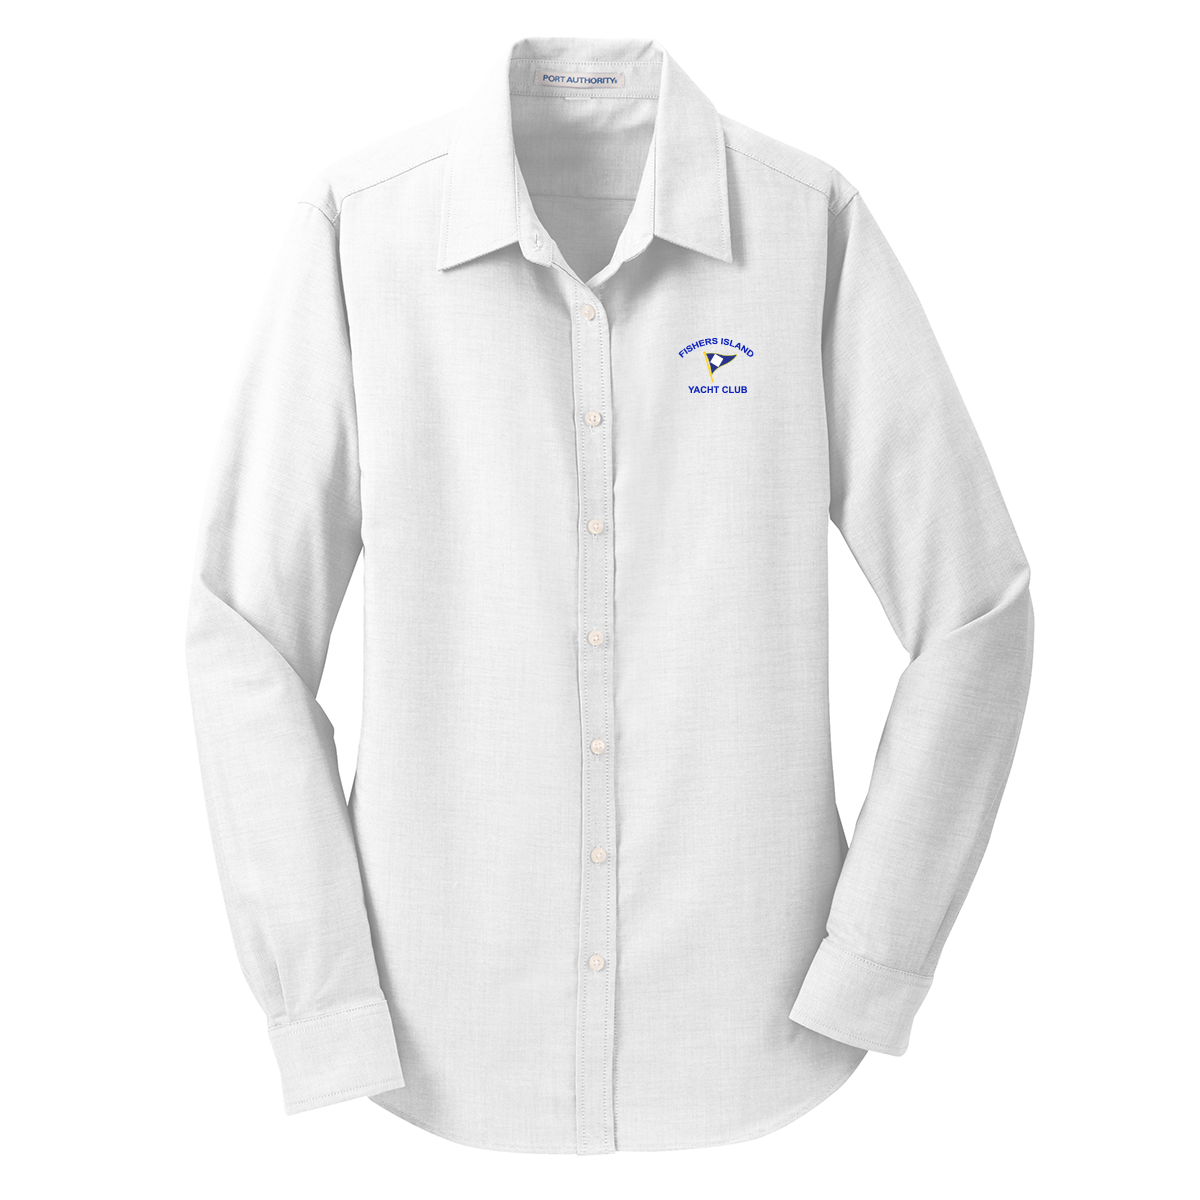 Fishers Island Yacht Club - Women's Oxford Shirt